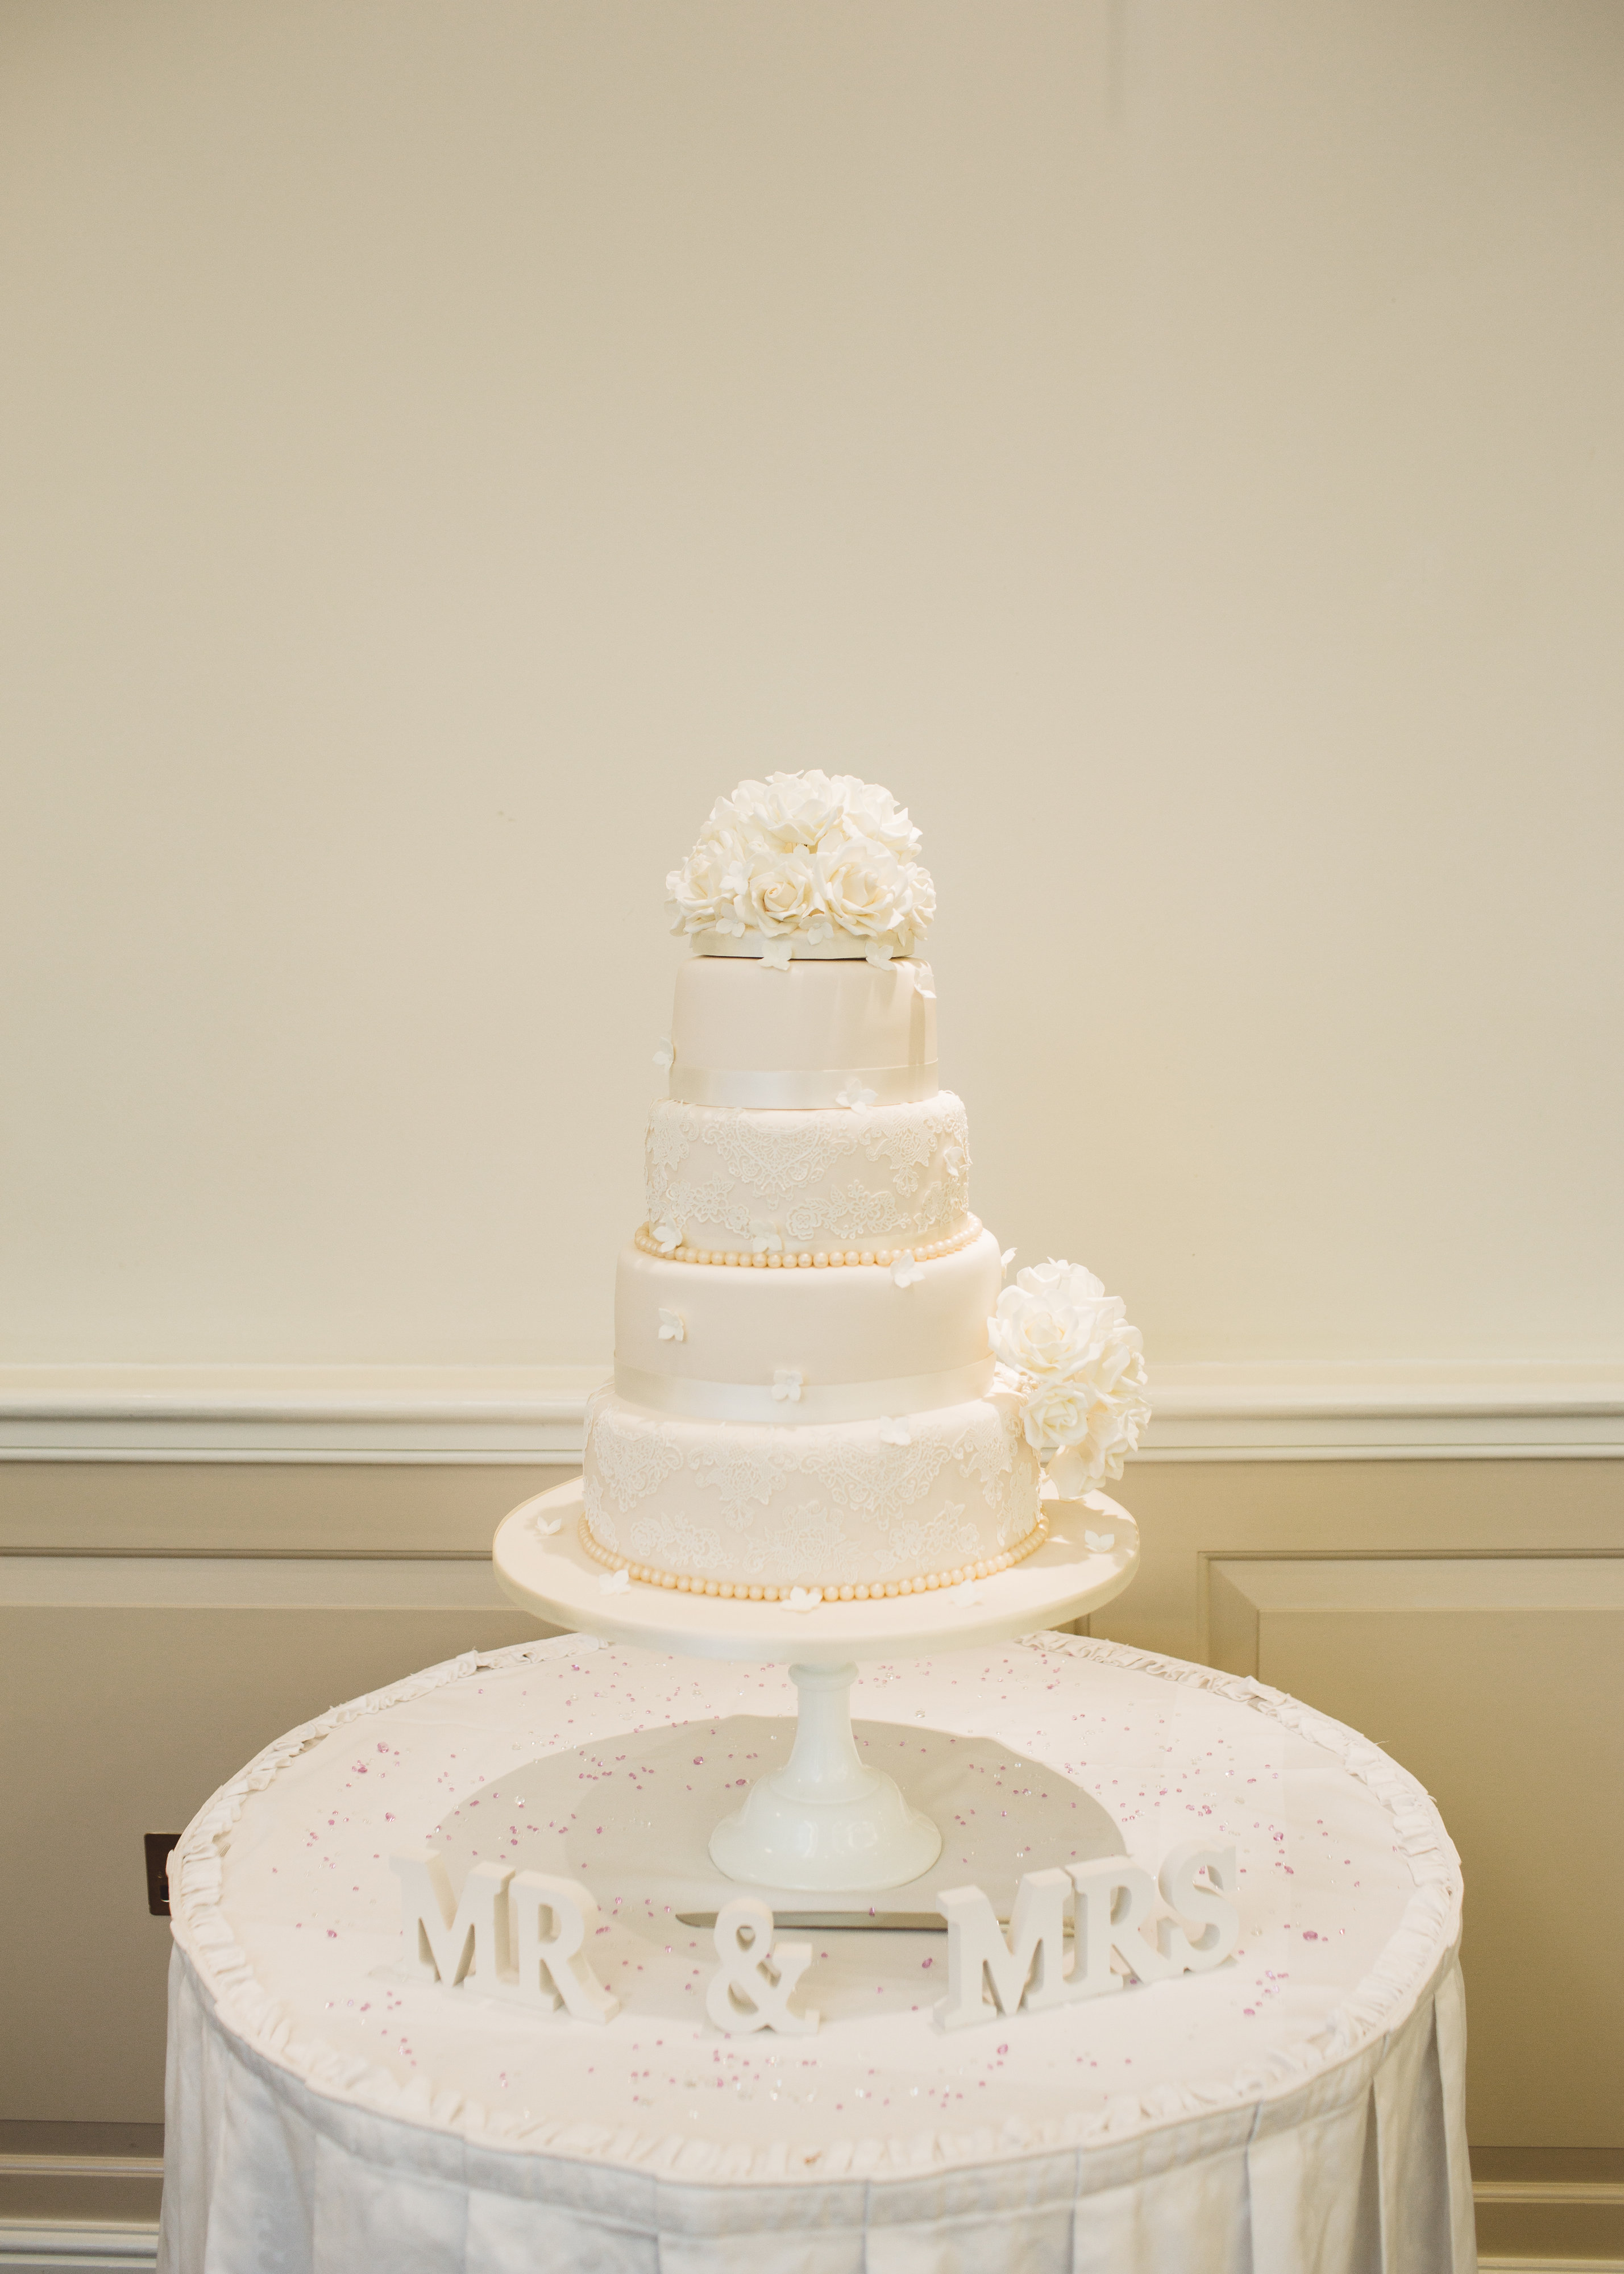 Iced Images Cakes